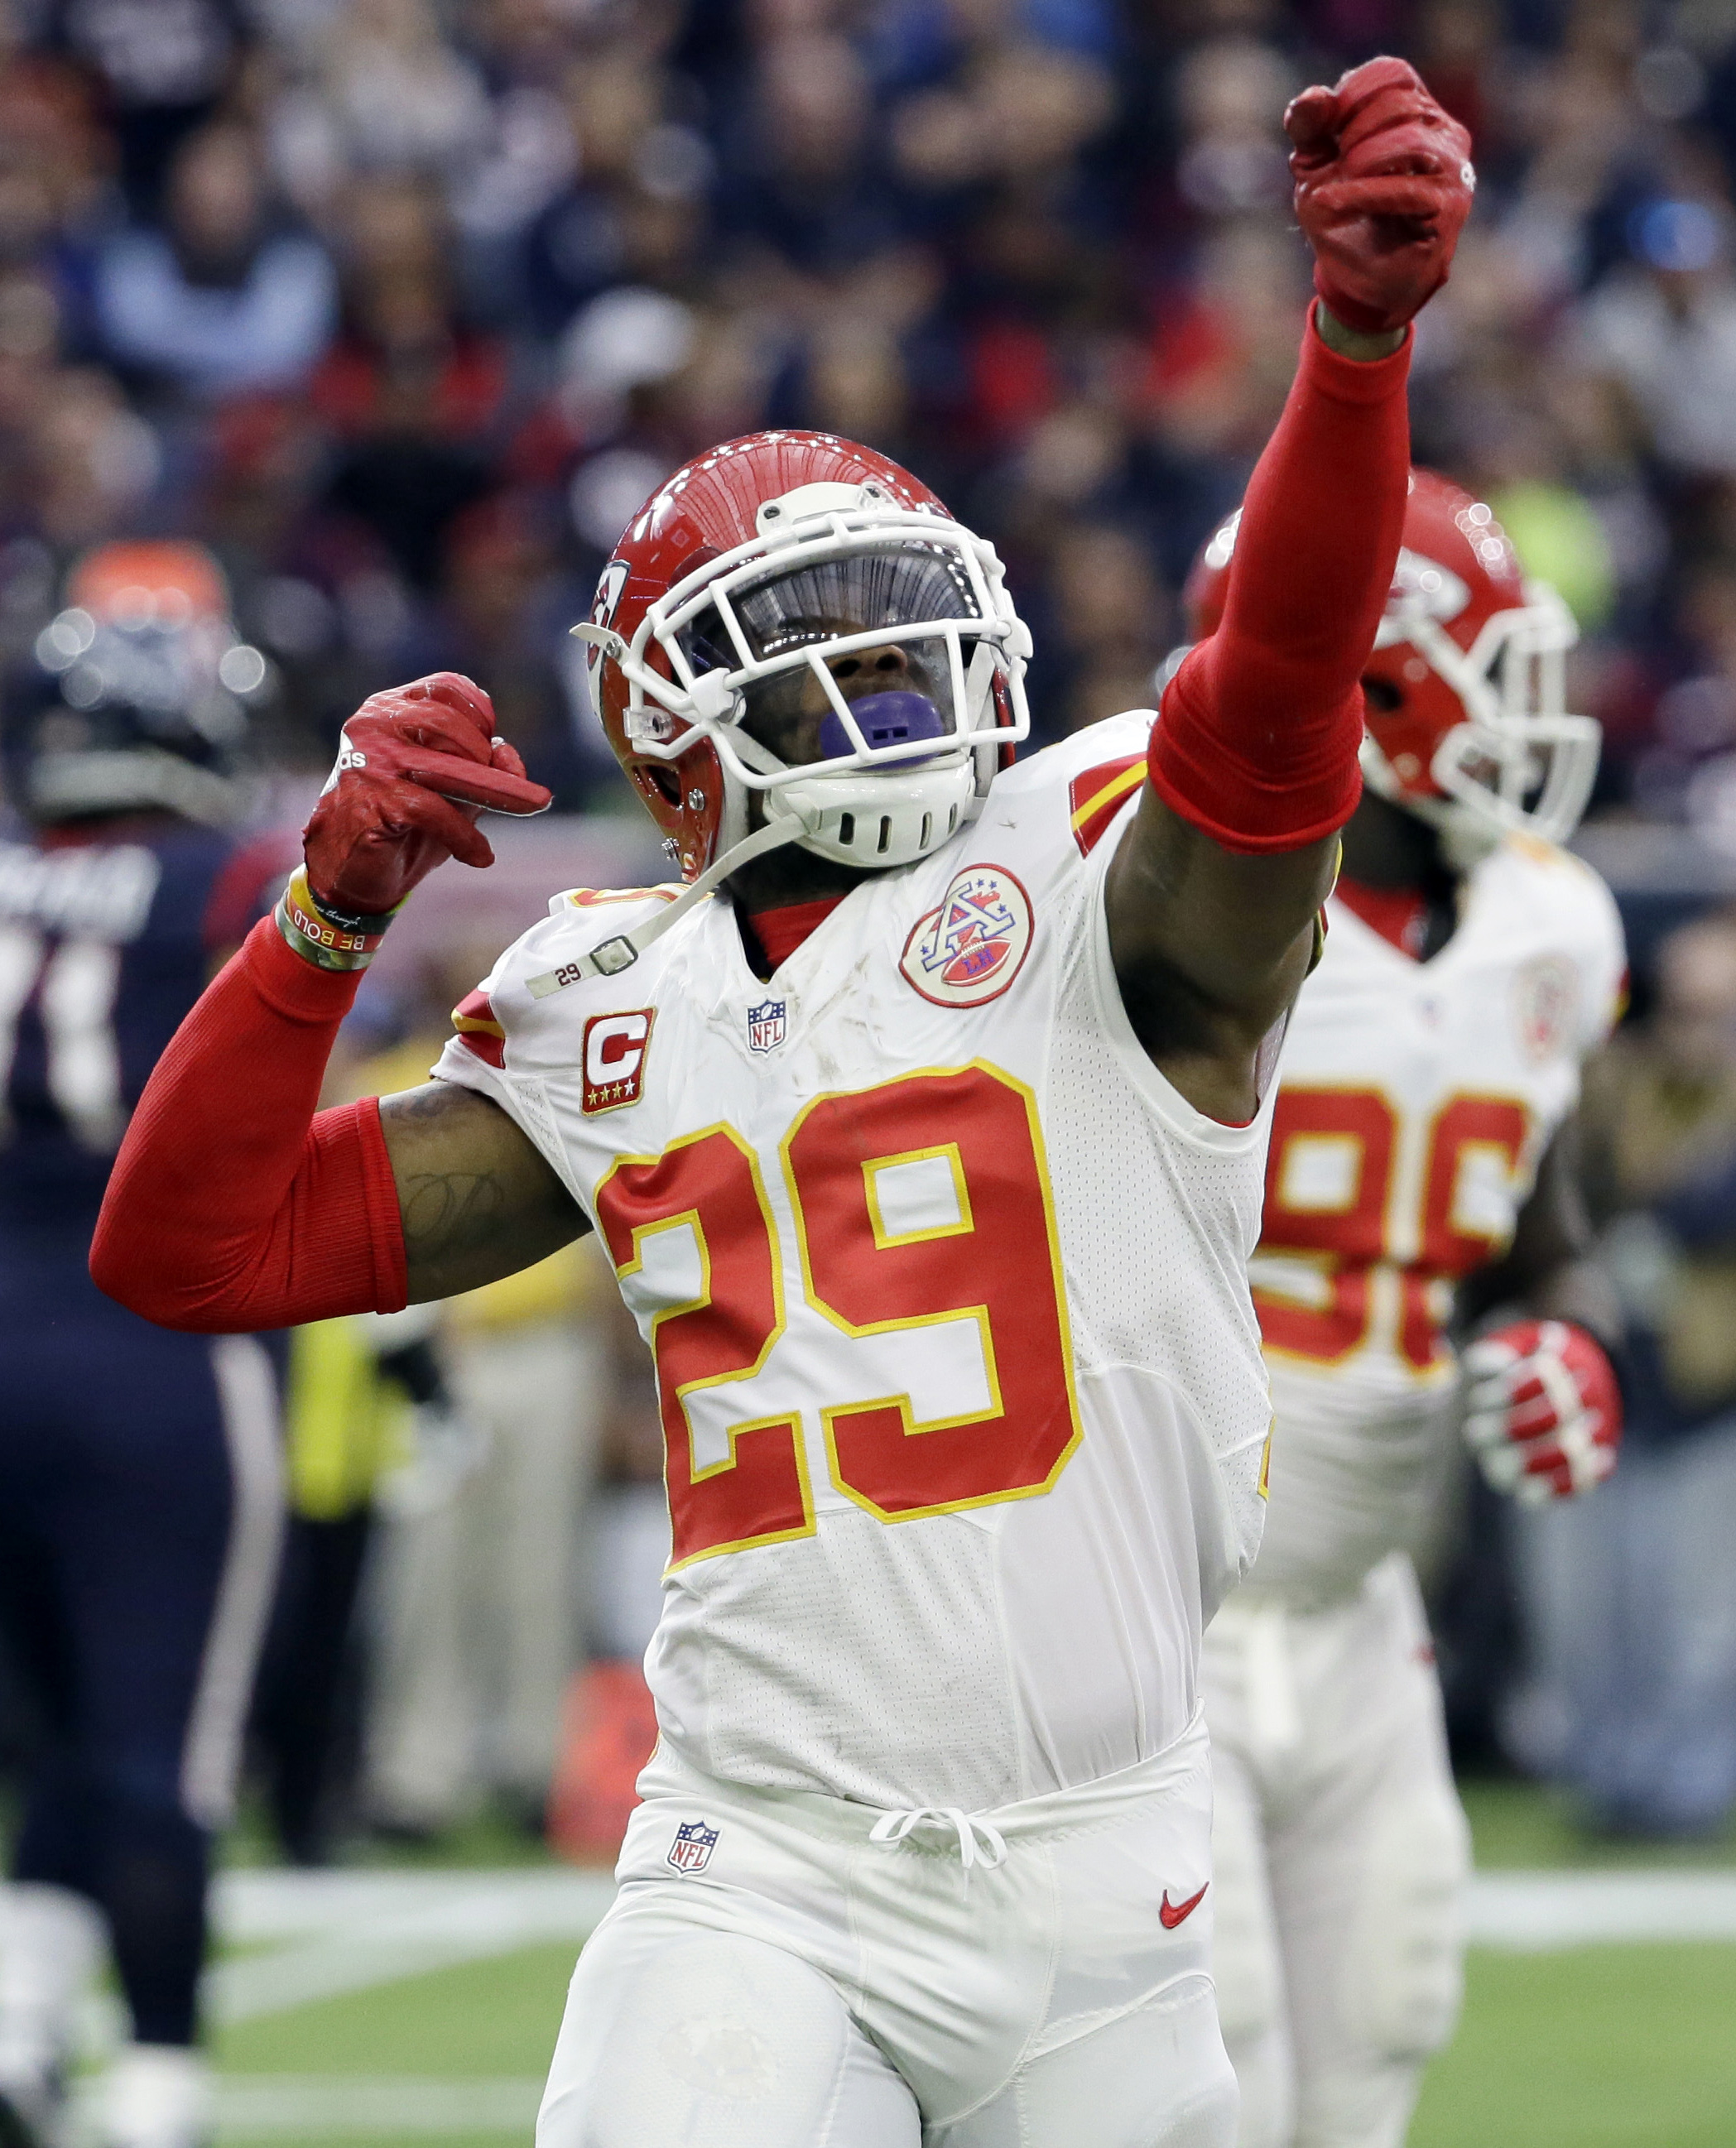 FILE - In this Jan. 9, 2016, file photo, Kansas City Chiefs free safety Eric Berry celebrates after an interception against the Houston Texans during an NFL wild-card football game in Houston.  The Chiefs placed the franchise tag on Berry on Tuesday, Marc